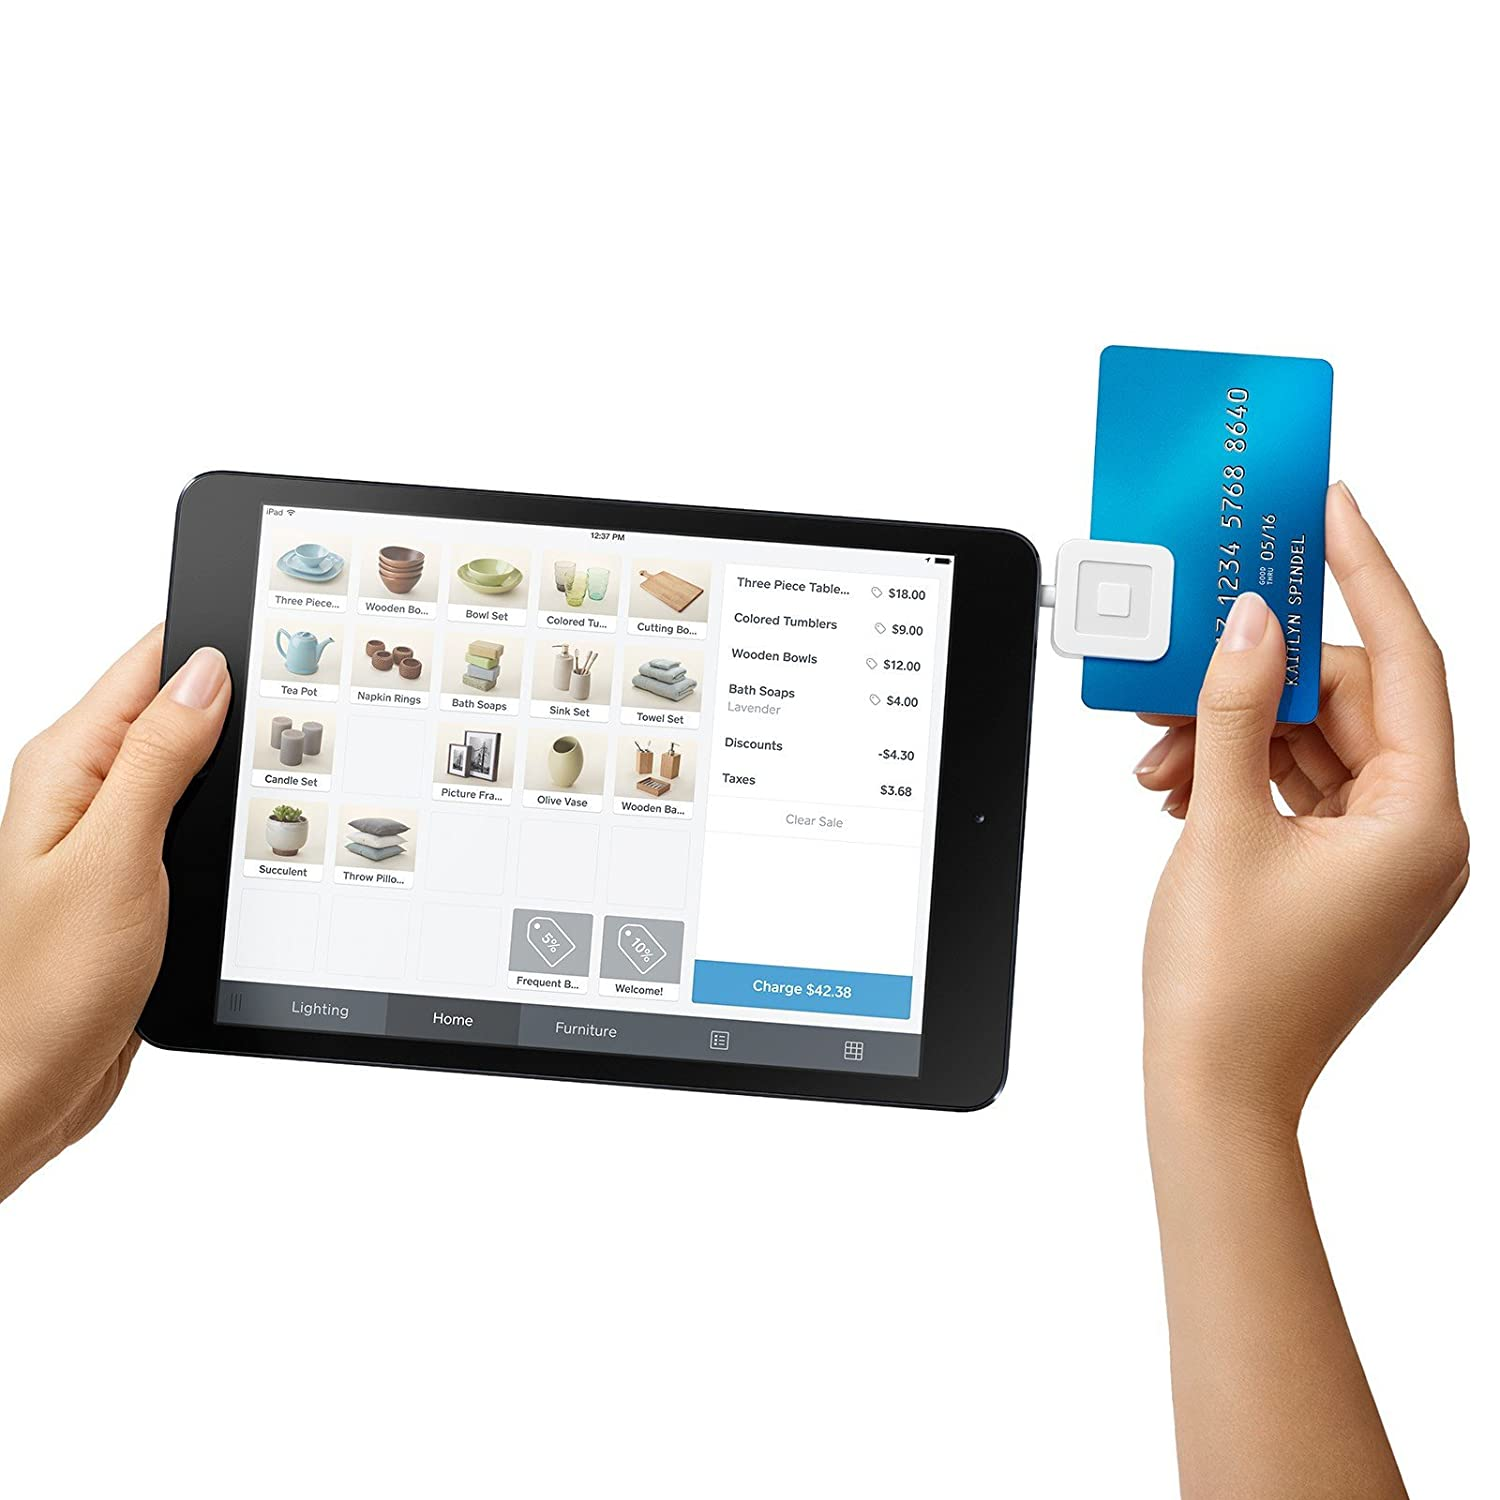 Square Reader For IPhone, IPad And Android